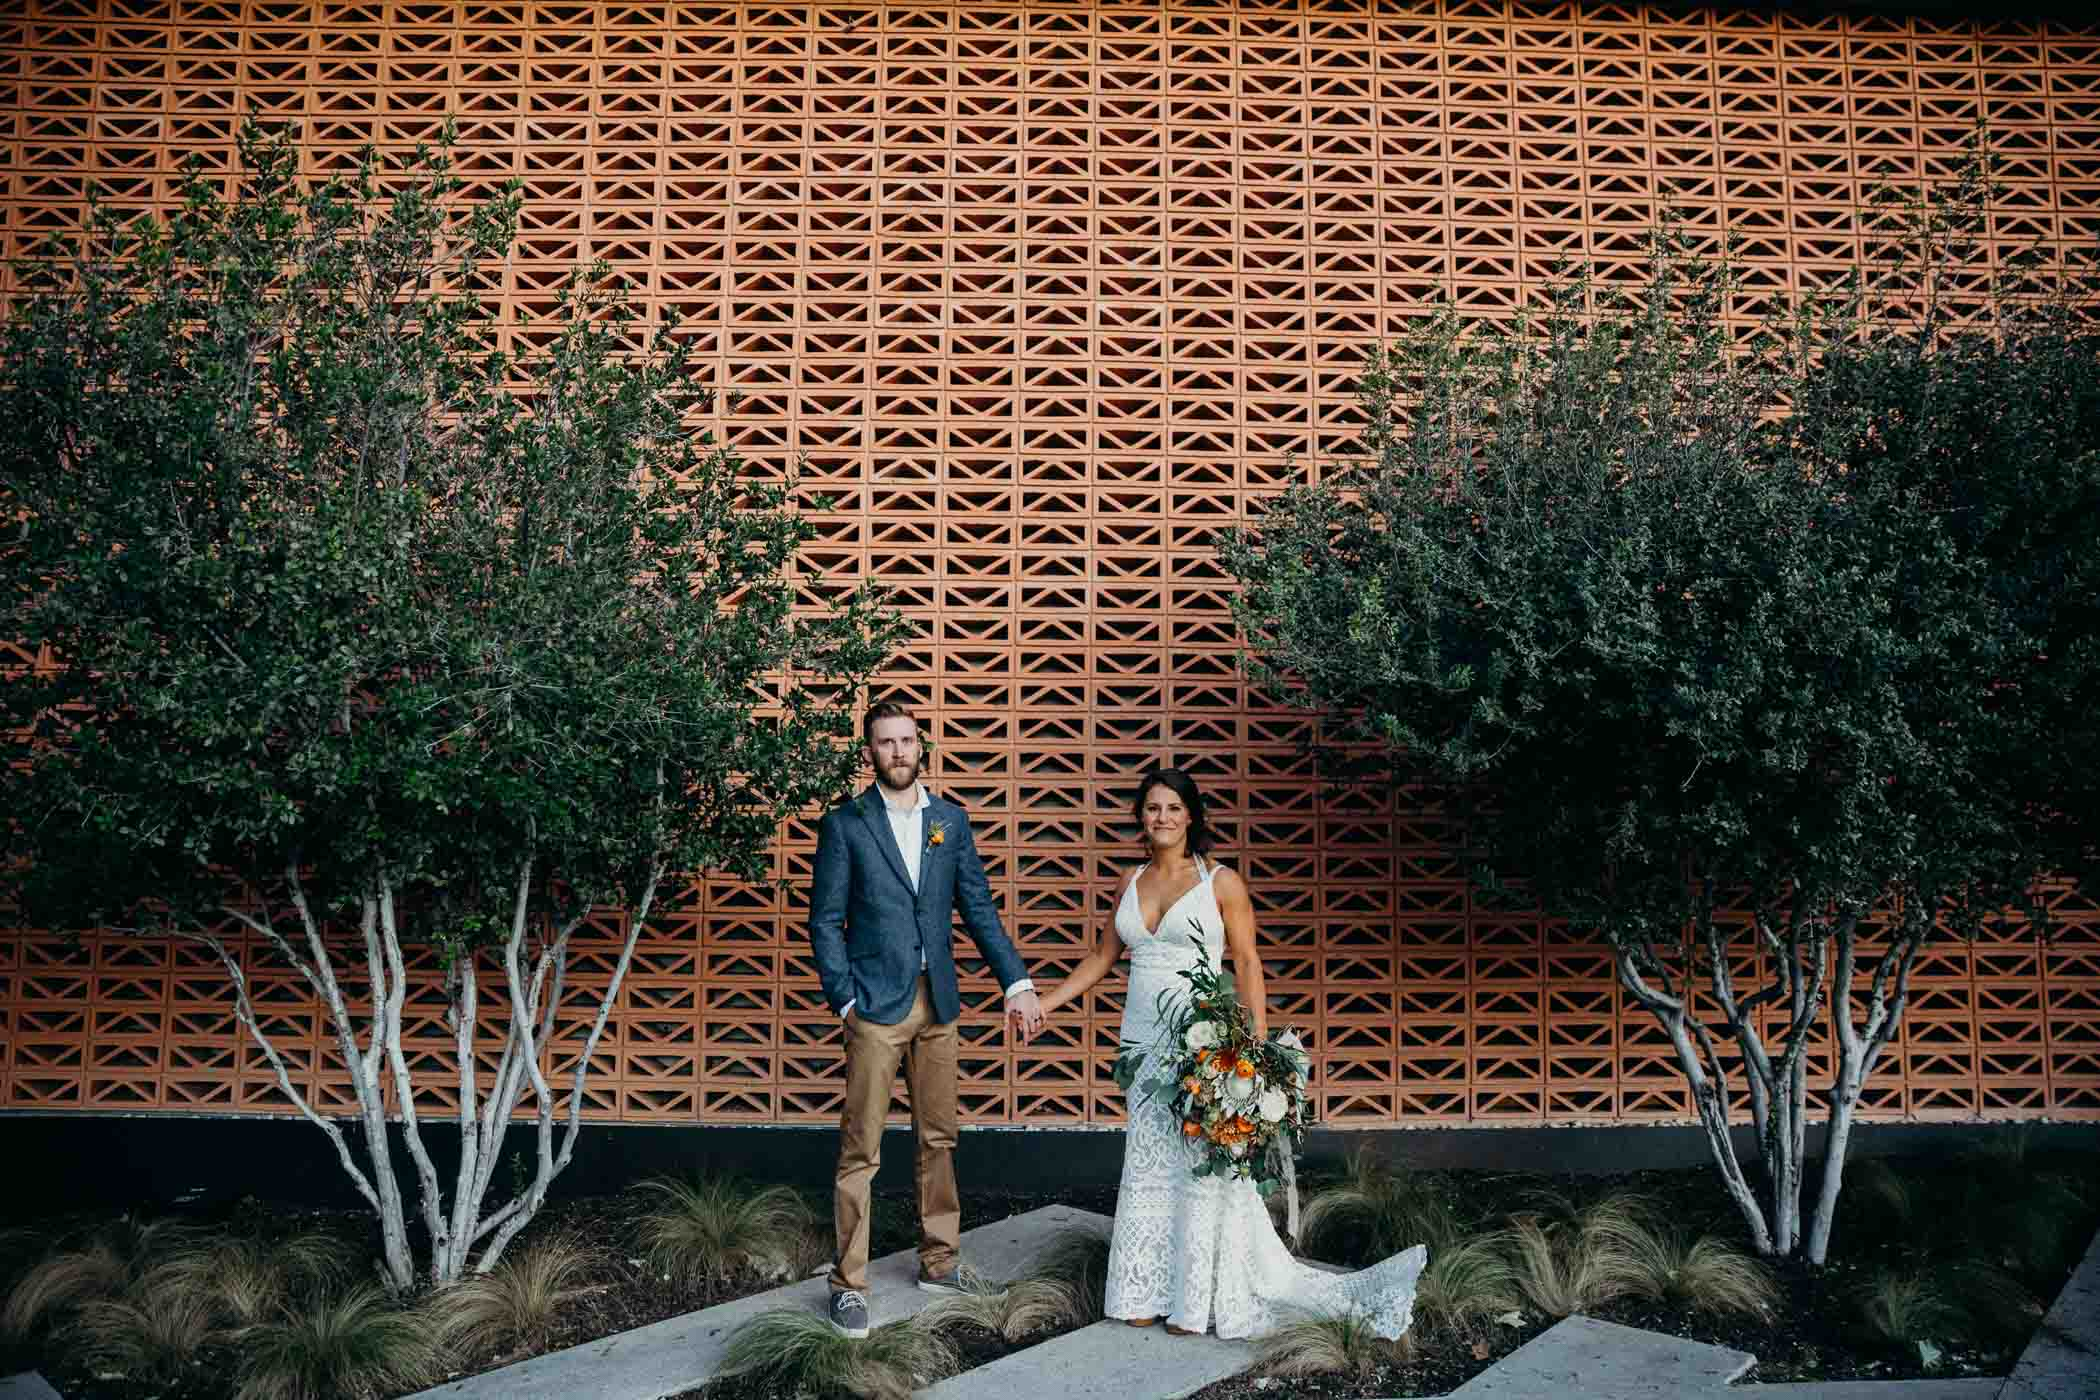 Bride and groom holding hands in front of a patterned wall with trees around them. The bride is wearing a boho dress and the groom is wearing khakis, a white shirt, and a blue jacket.